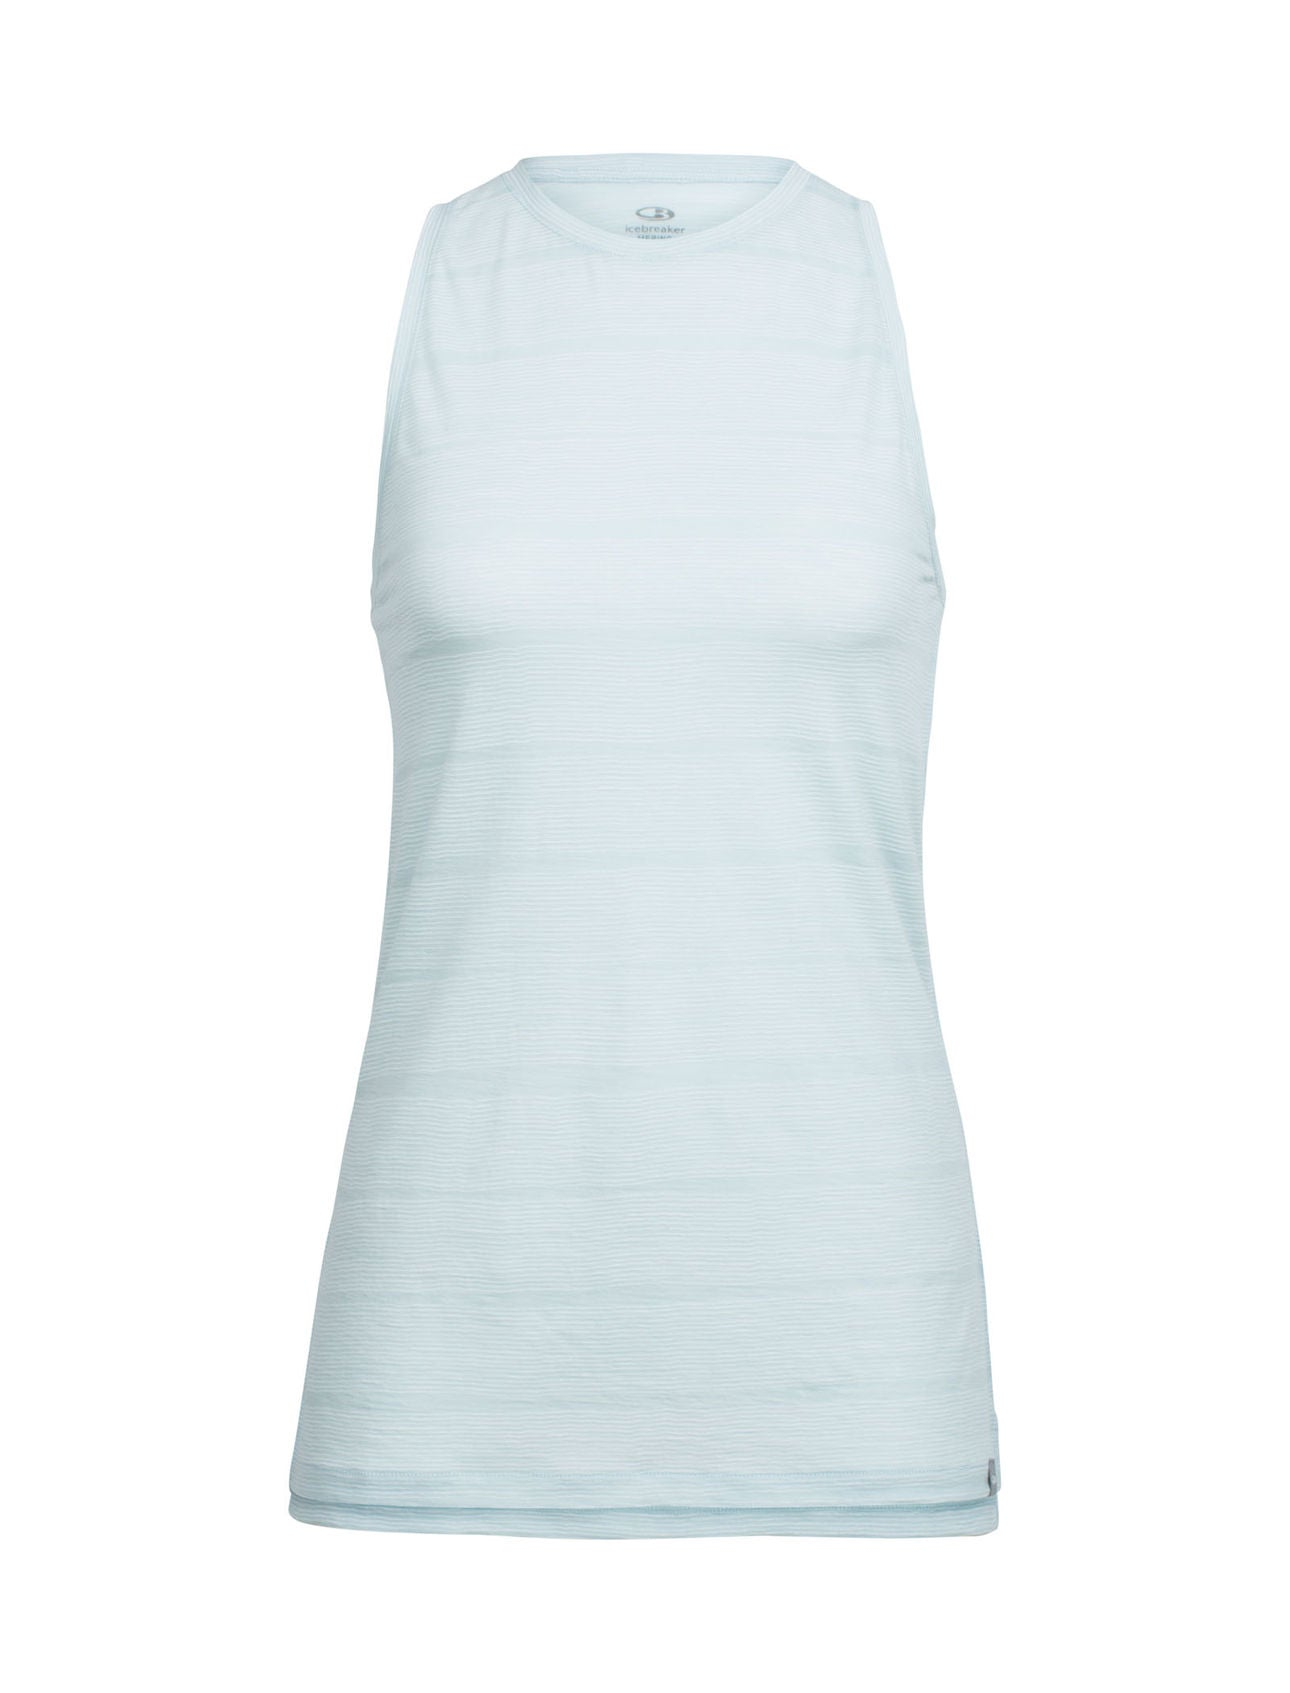 Icebreaker Women's Aria Sleeveless Combed Line Tank - OutdoorsInc.com